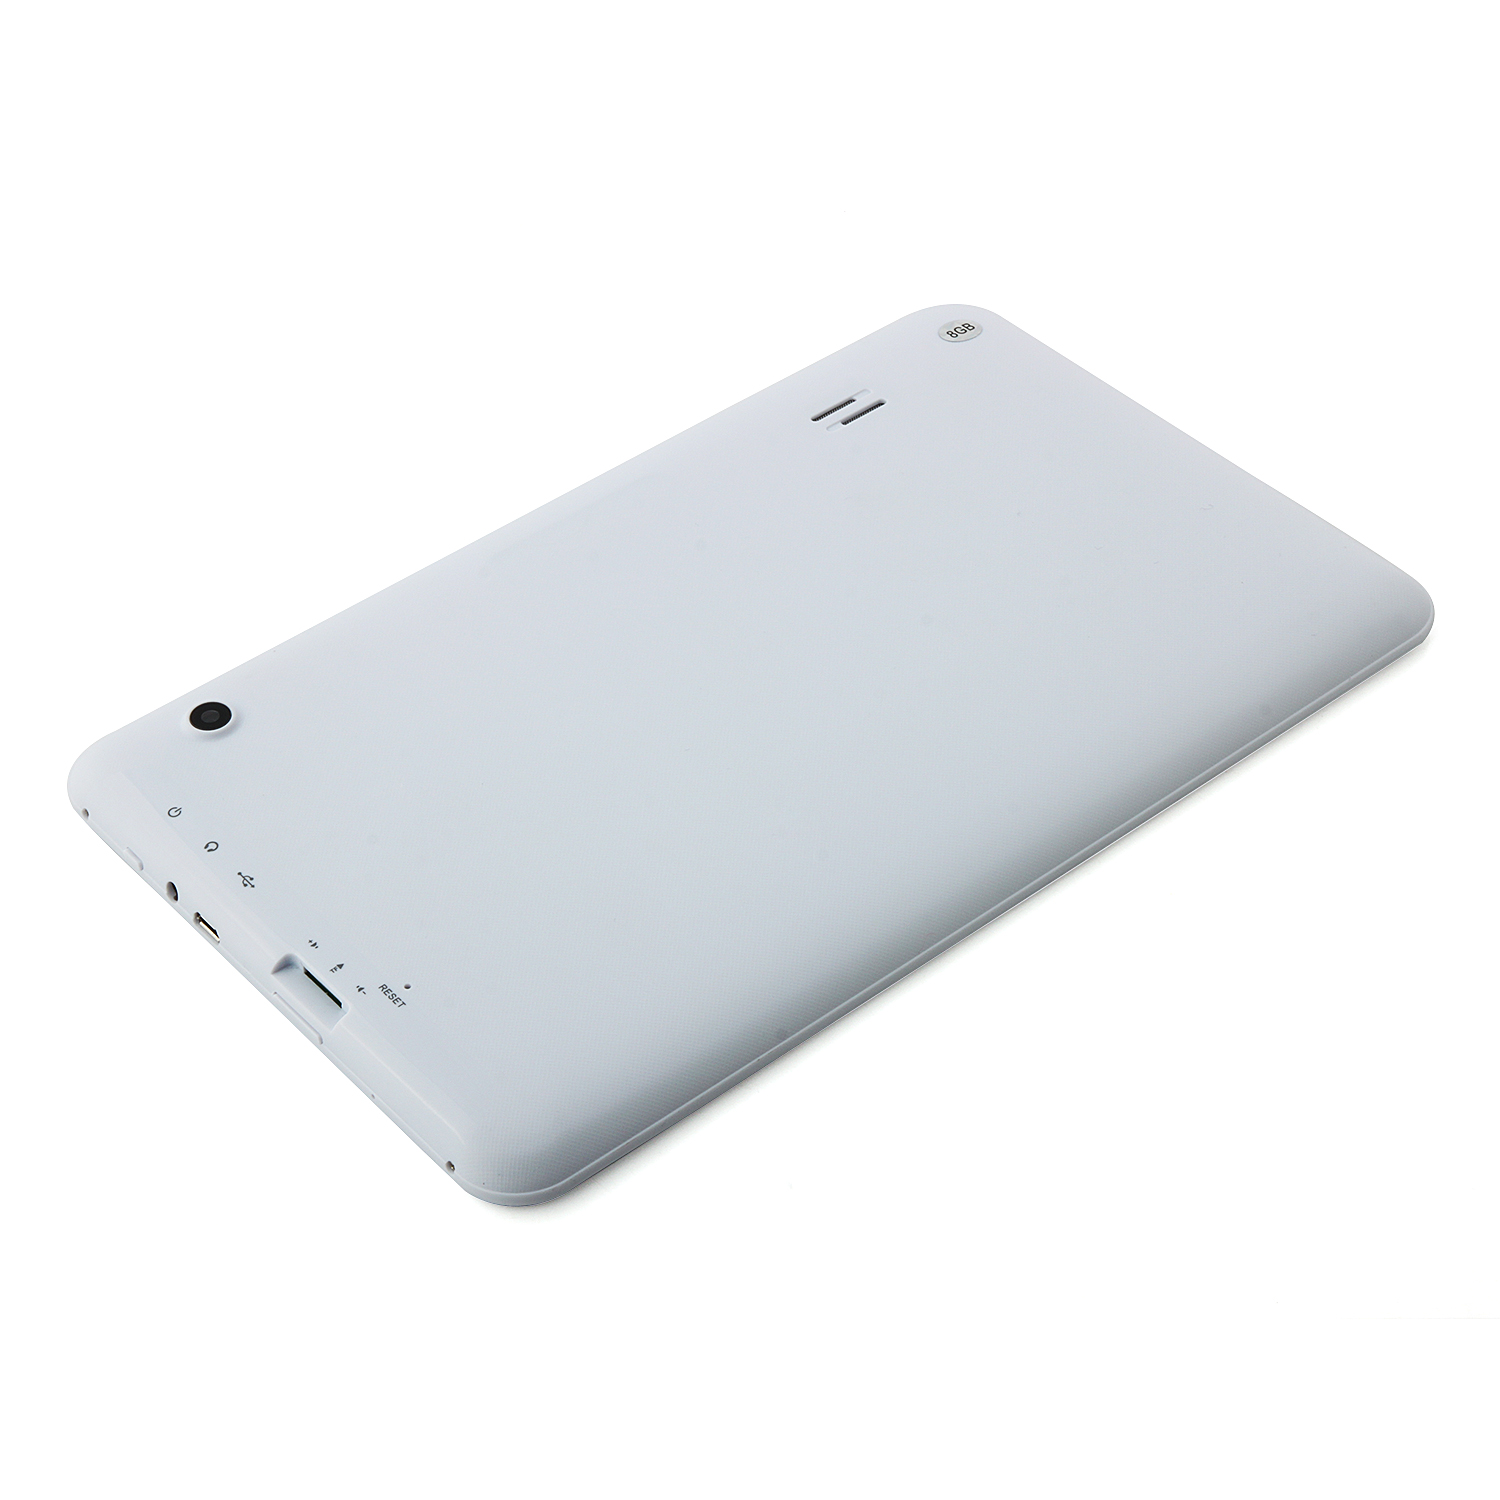 H901 Tablet PC Quad Core RK3126 1.2GHz 9.0 Inch Android 4.4 8GB White